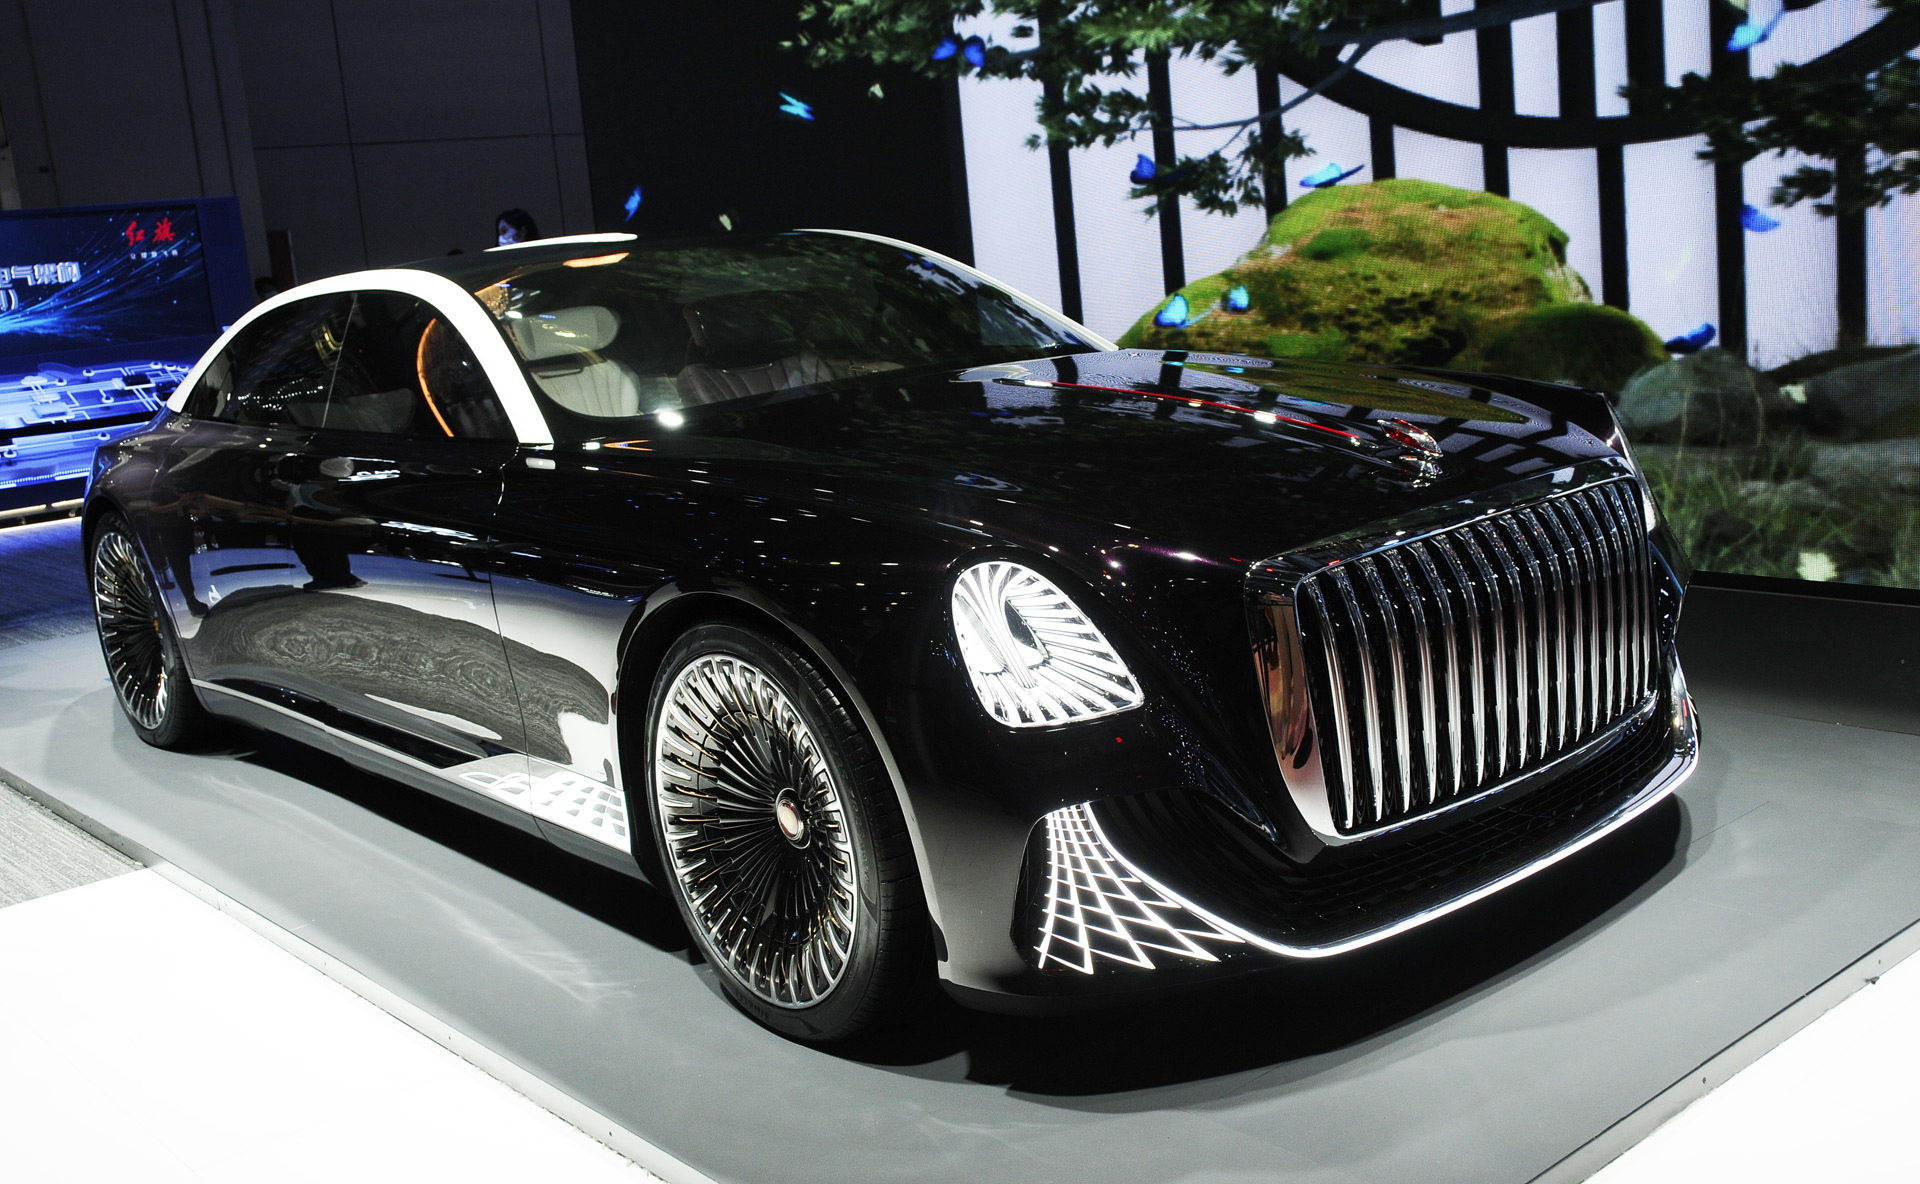 Luxury Car News cover image